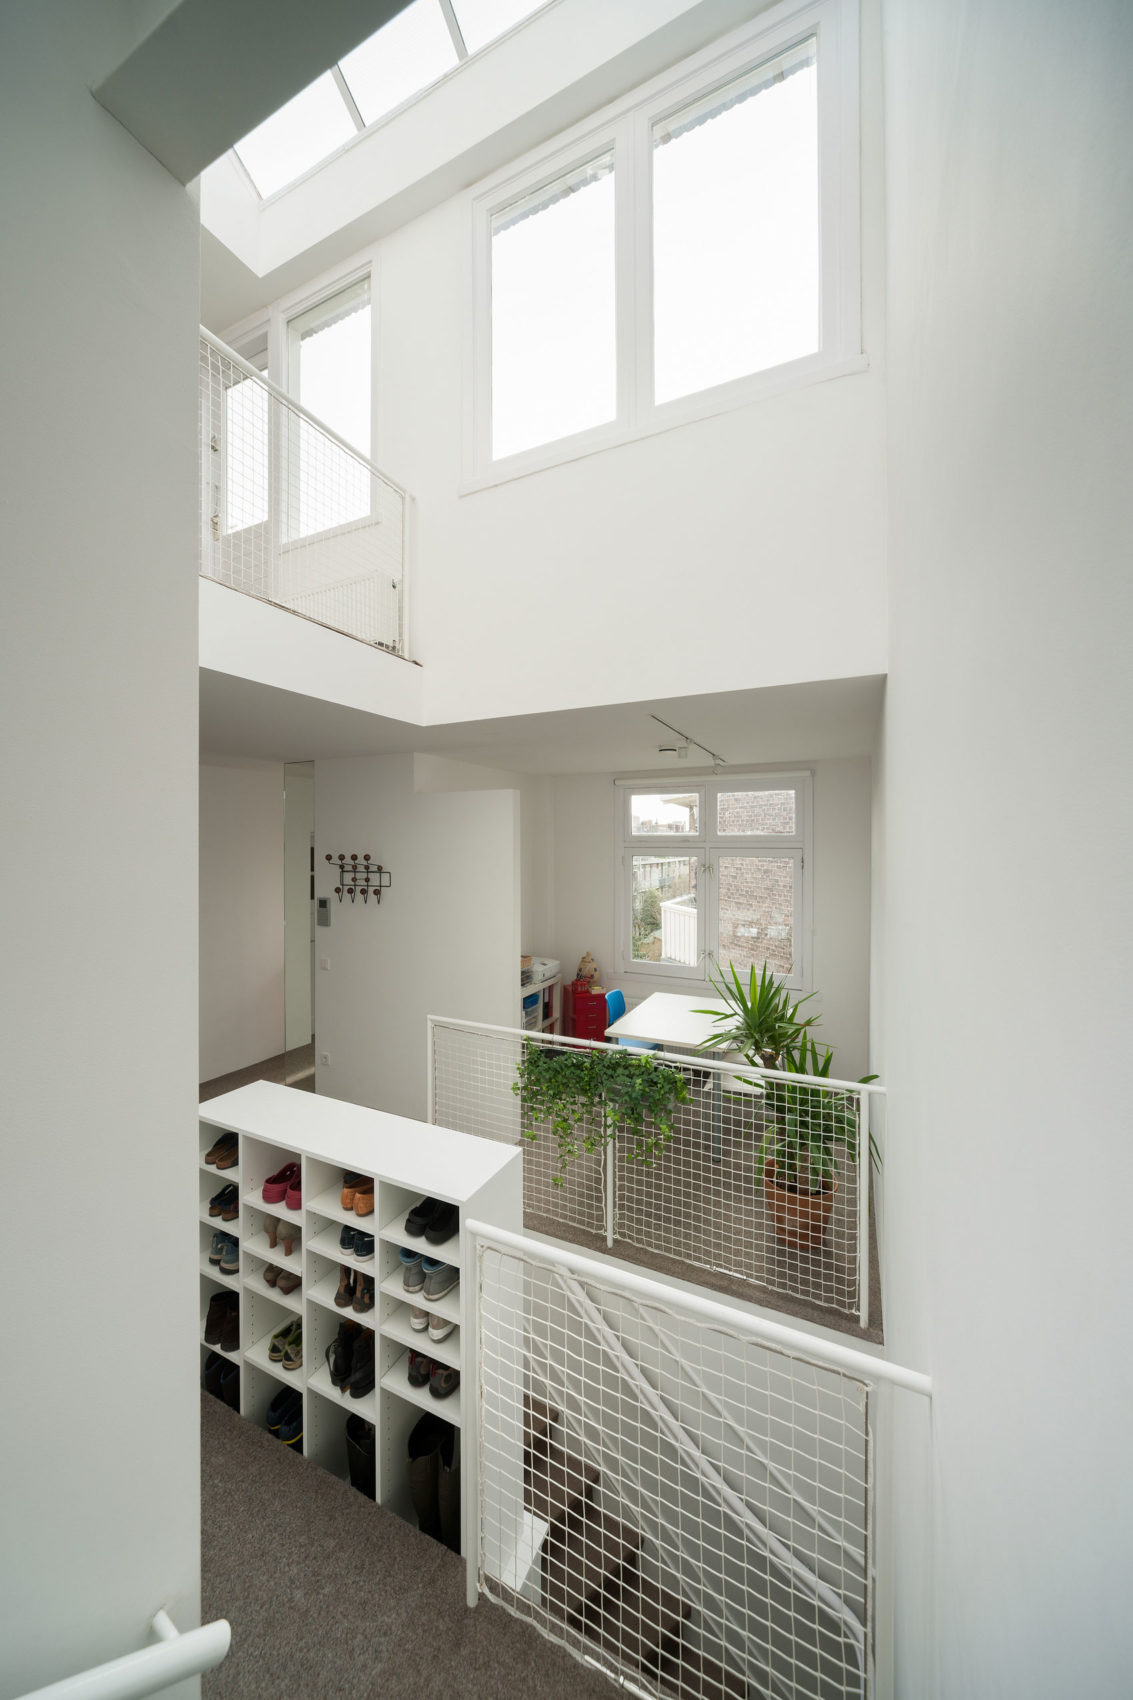 Apartment in Amsterdam by MAMM Design (6)